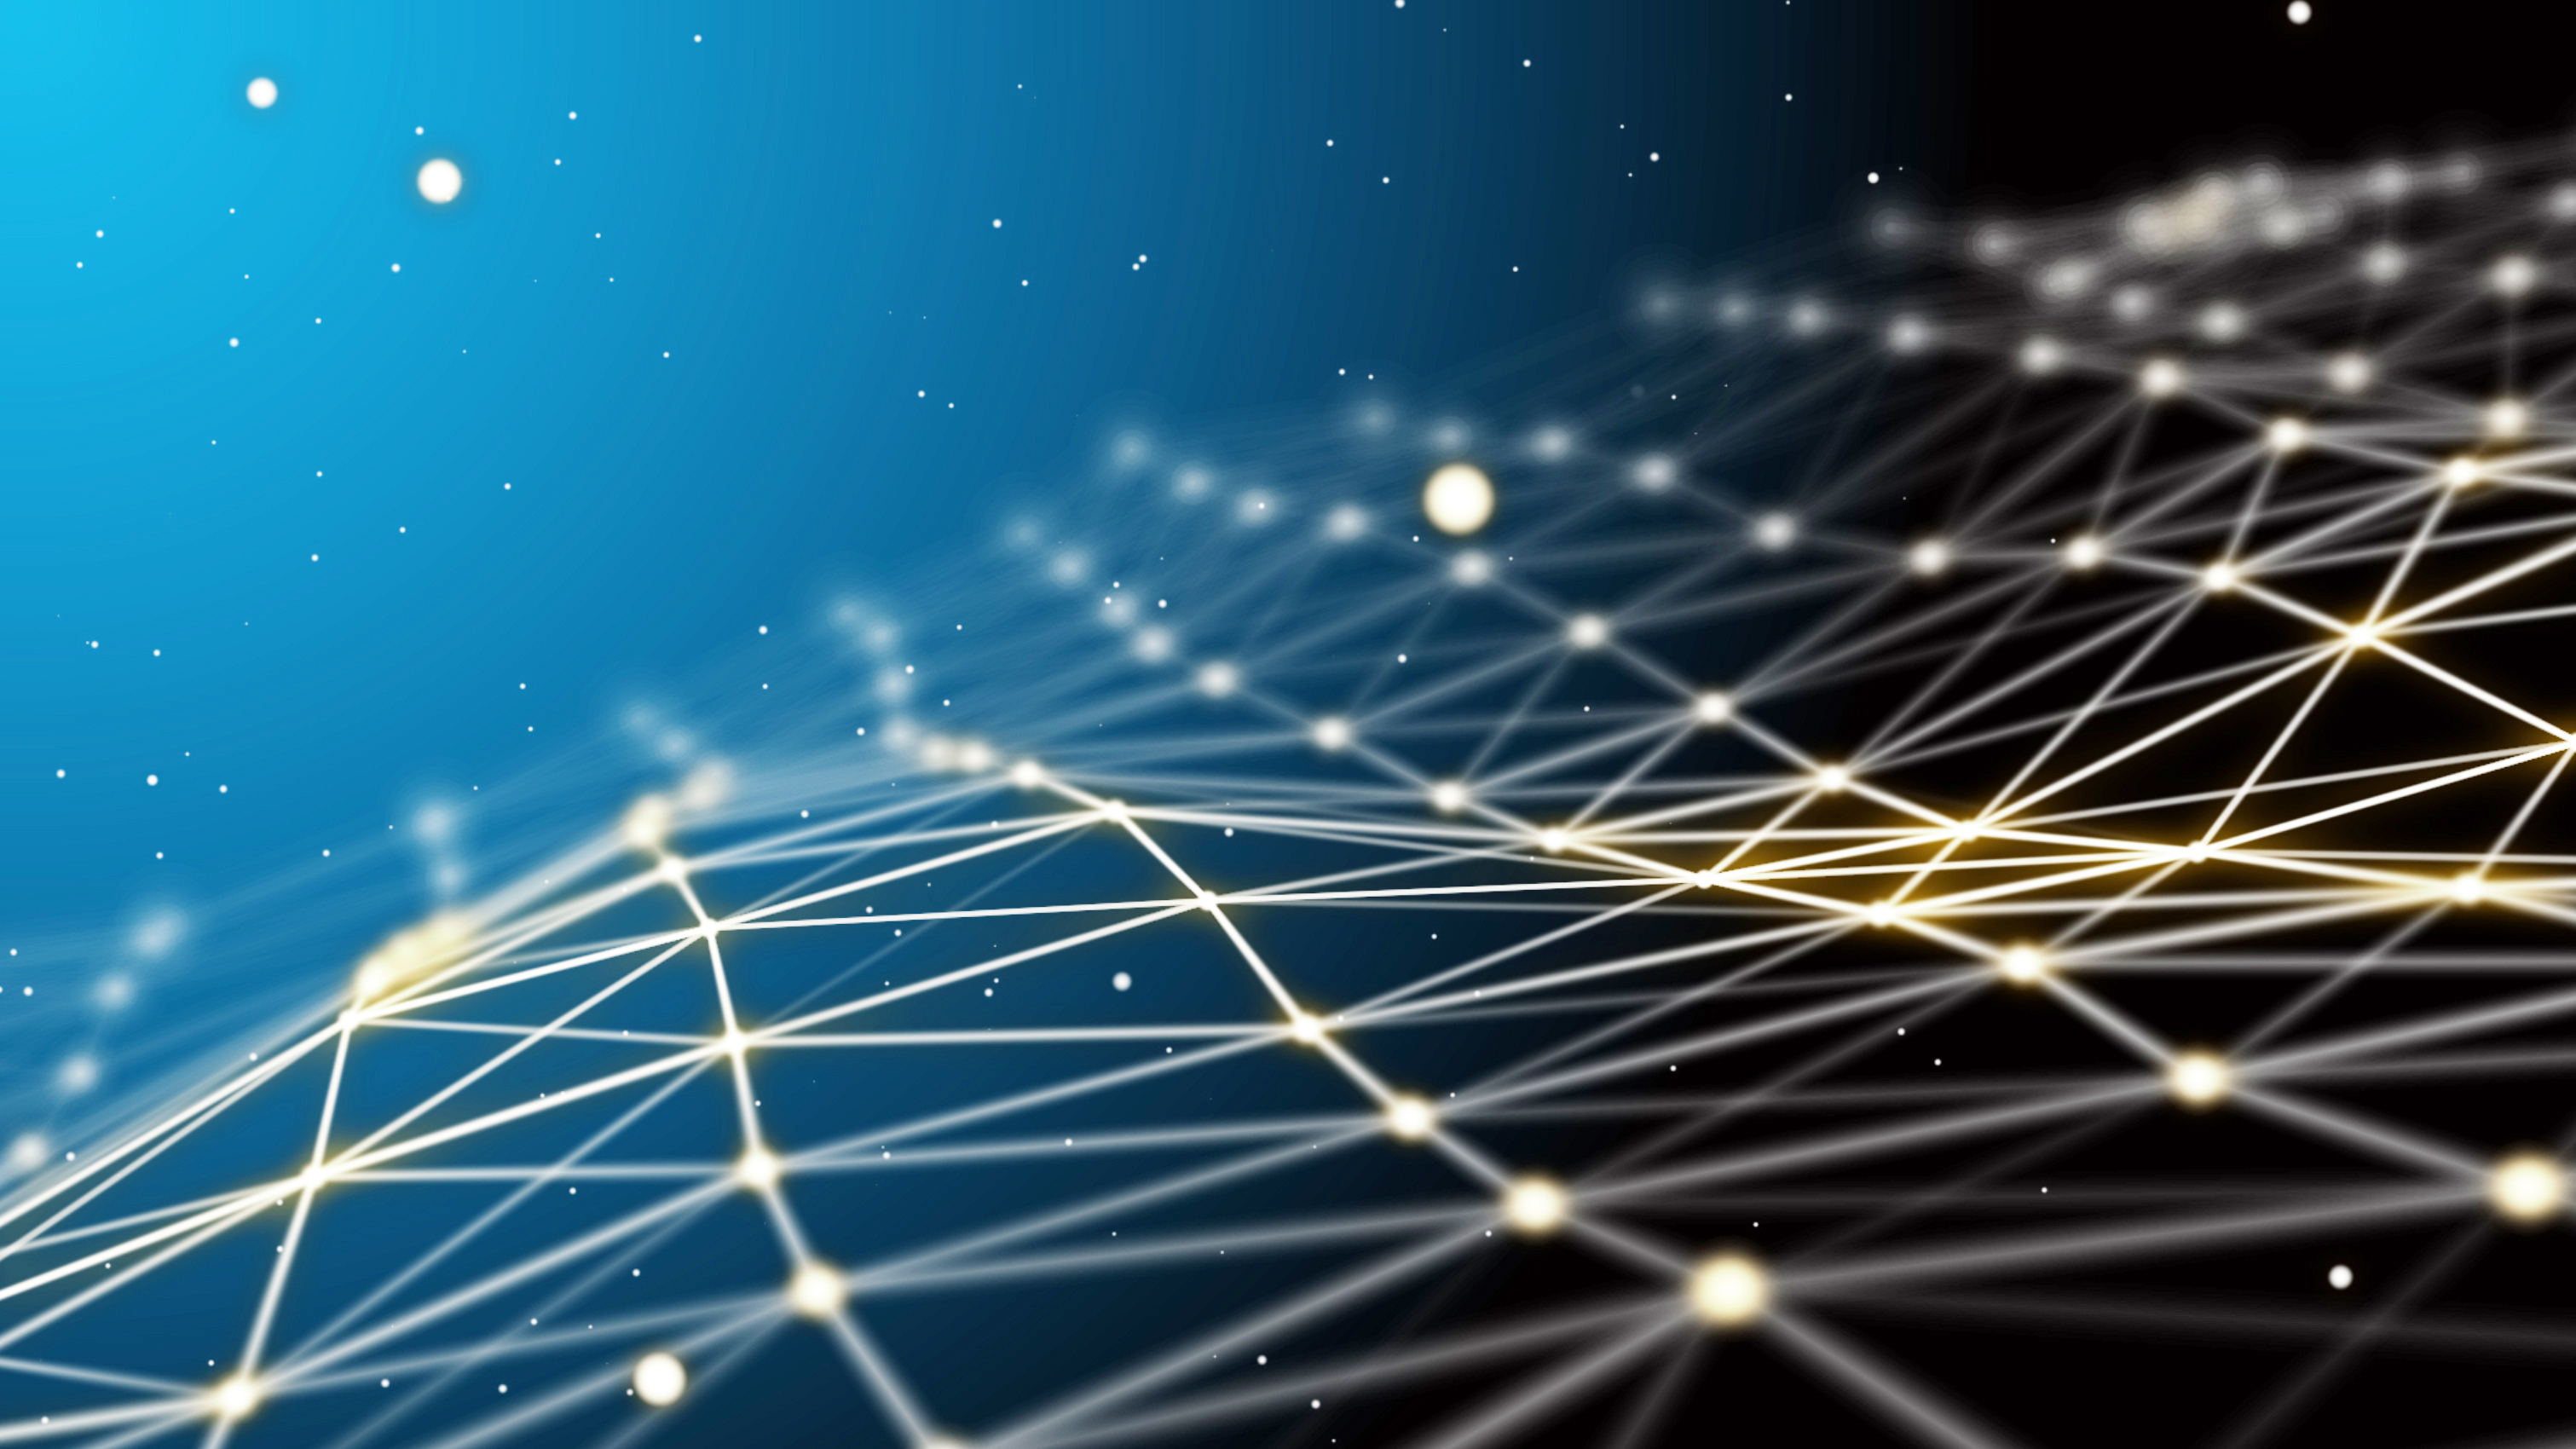 Blue futuristic technology background. Beautiful wavy network co